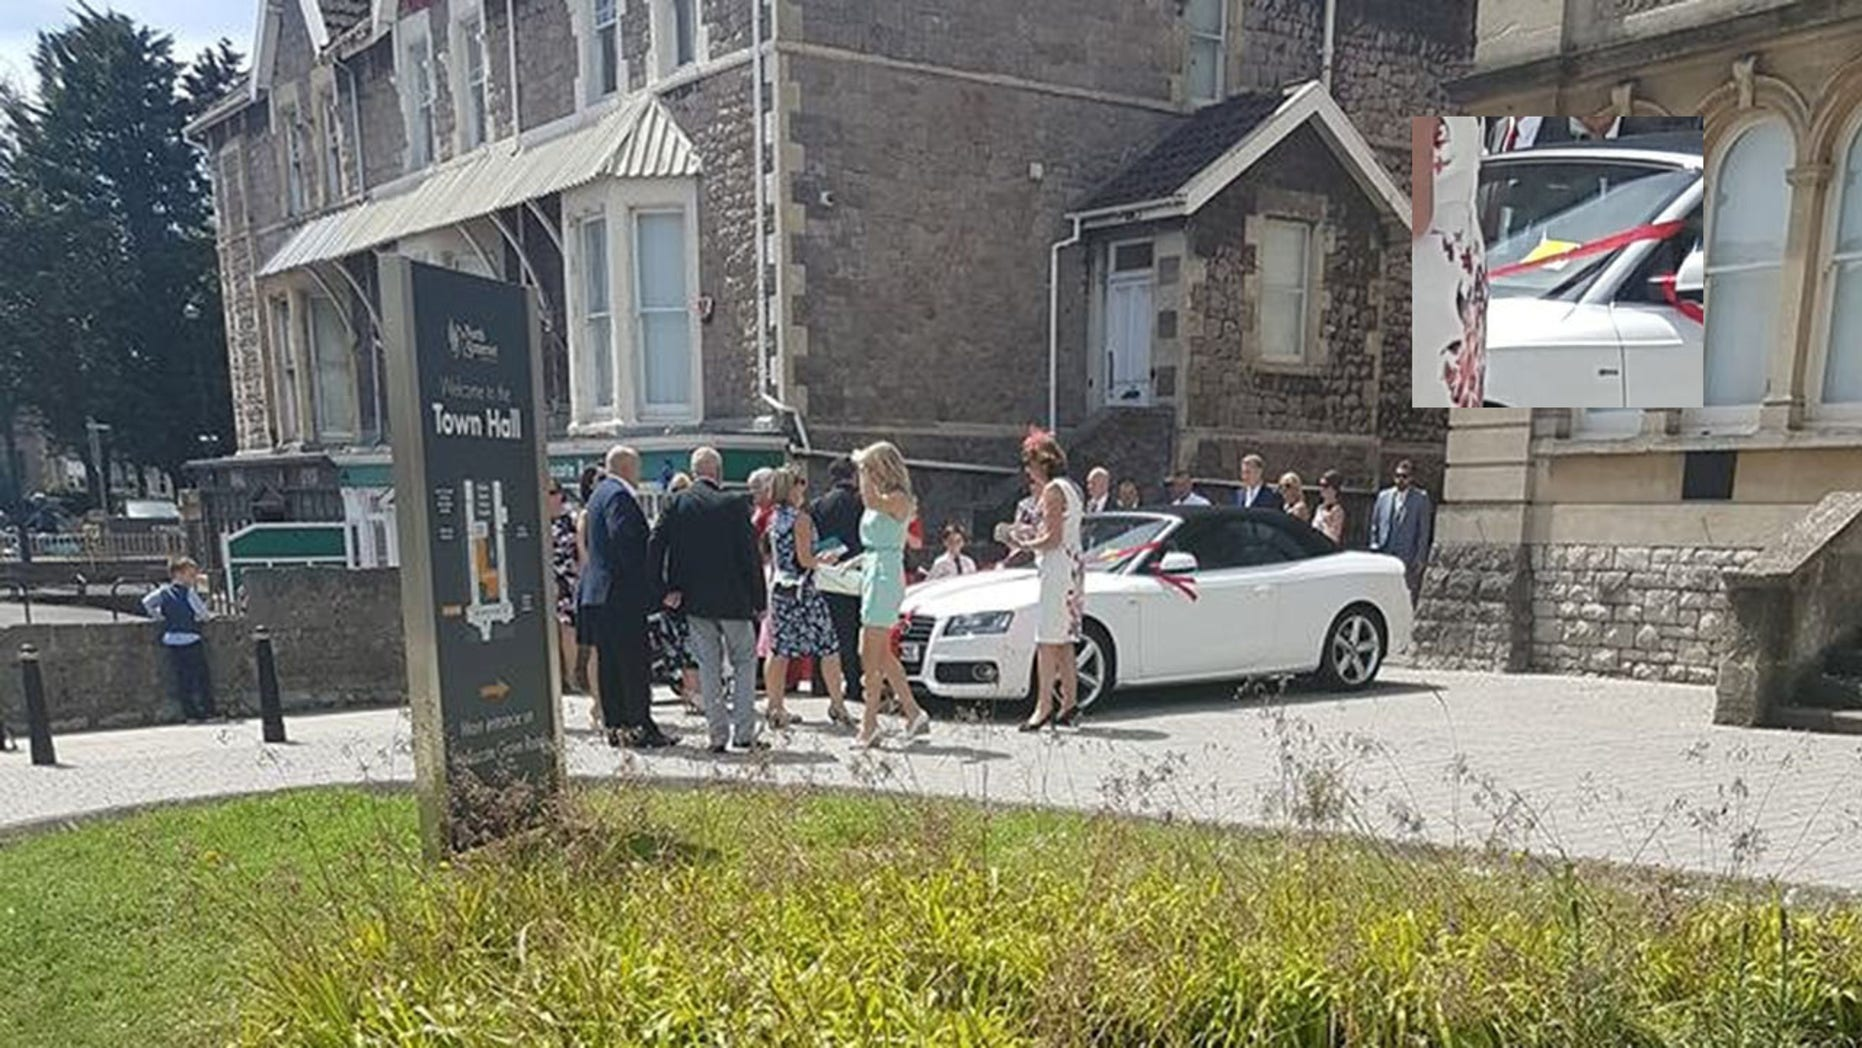 These images appear to show a happy couple being given a parking ticket on their wedding day - but it was placed on the windscreen as a prank. See SWNS story SWWEDDING; The white Audi convertible parked outside the registry office in Weston-Super-Mare, North Somerset, has what looked like a bright yellow parking ticket on the windscreen. Guests could be seen mingling around outside the town hall dressed in smart clothes. Freya Shepherd, who was passing by, spotted the suspected Penalty Charge Notice (PCN) and was shocked that a traffic warden could be so mean-spirited.